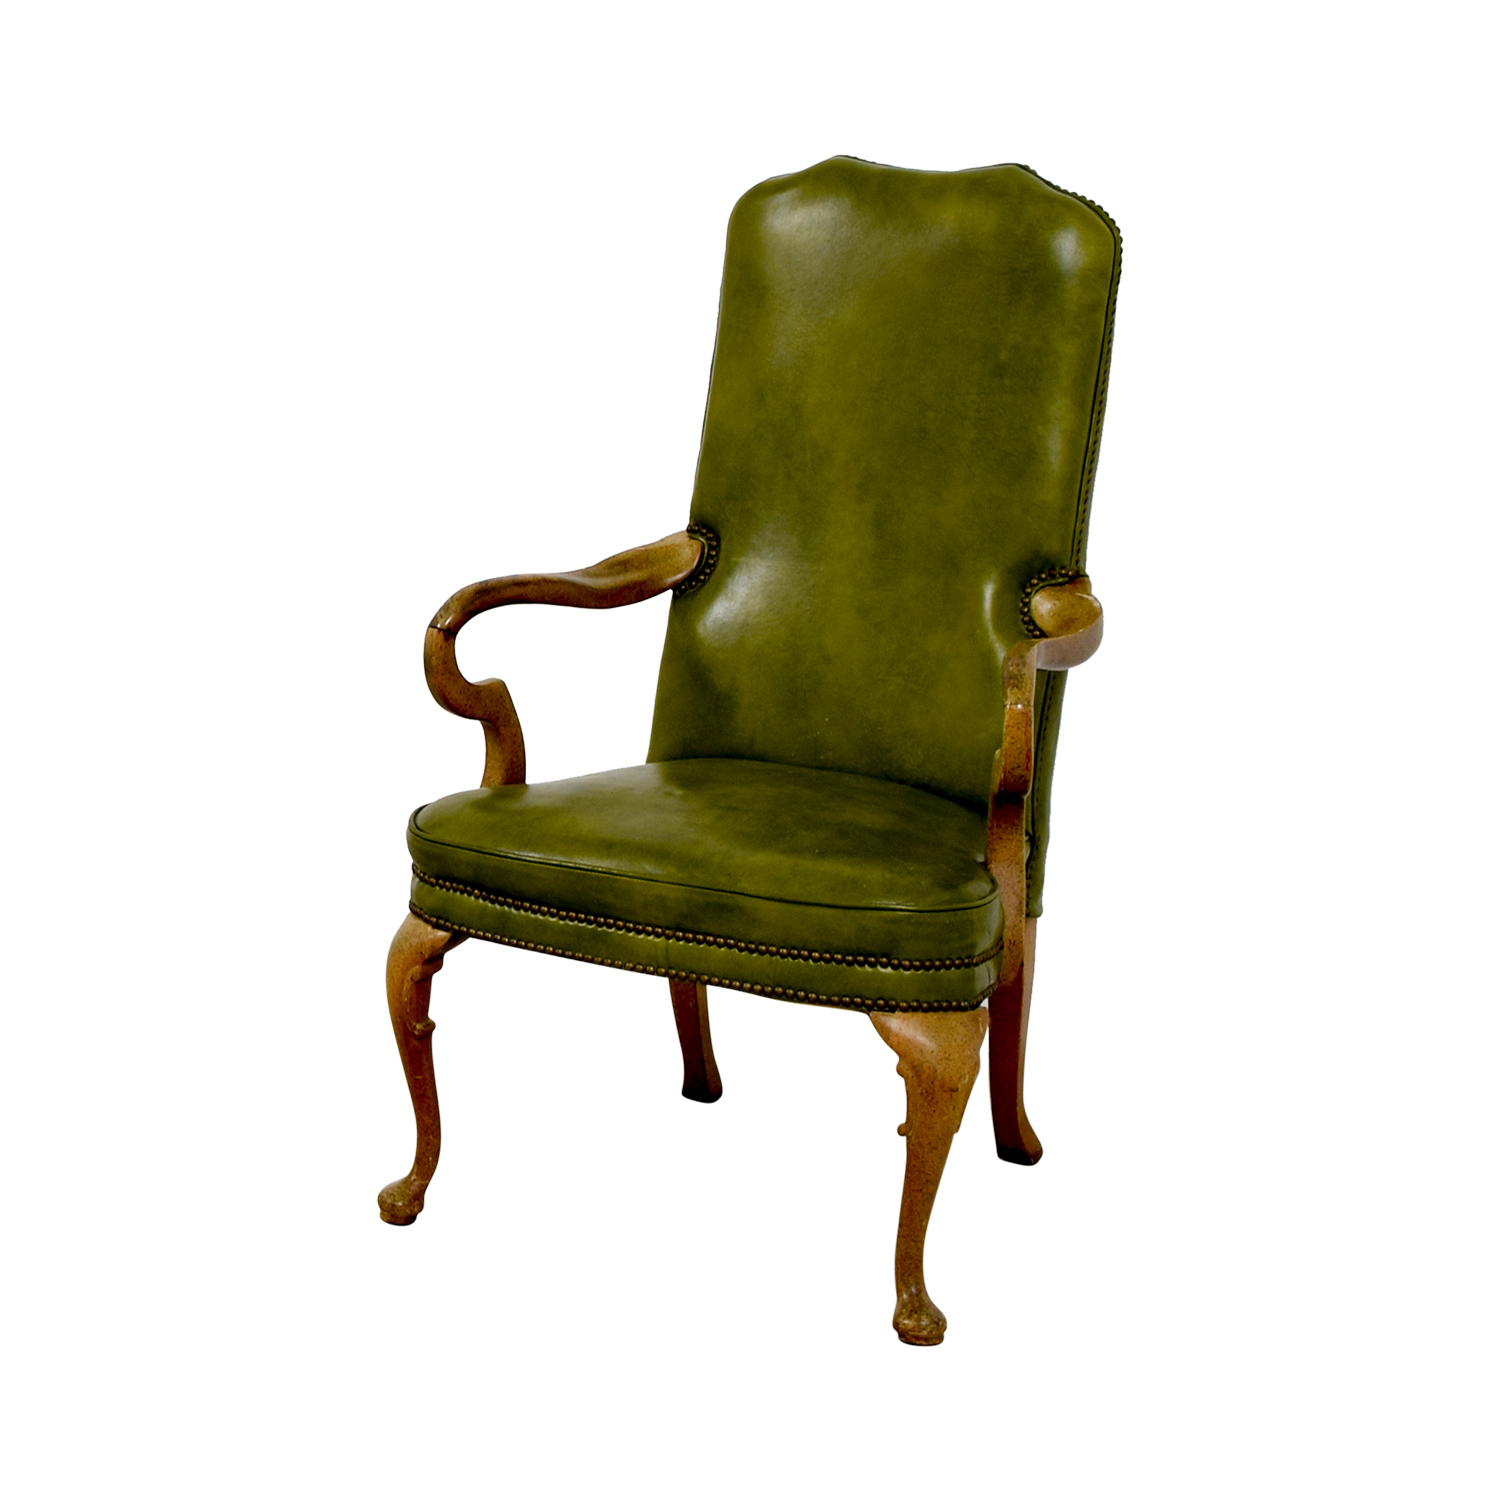 Green Leather Studded Regency Chair for sale